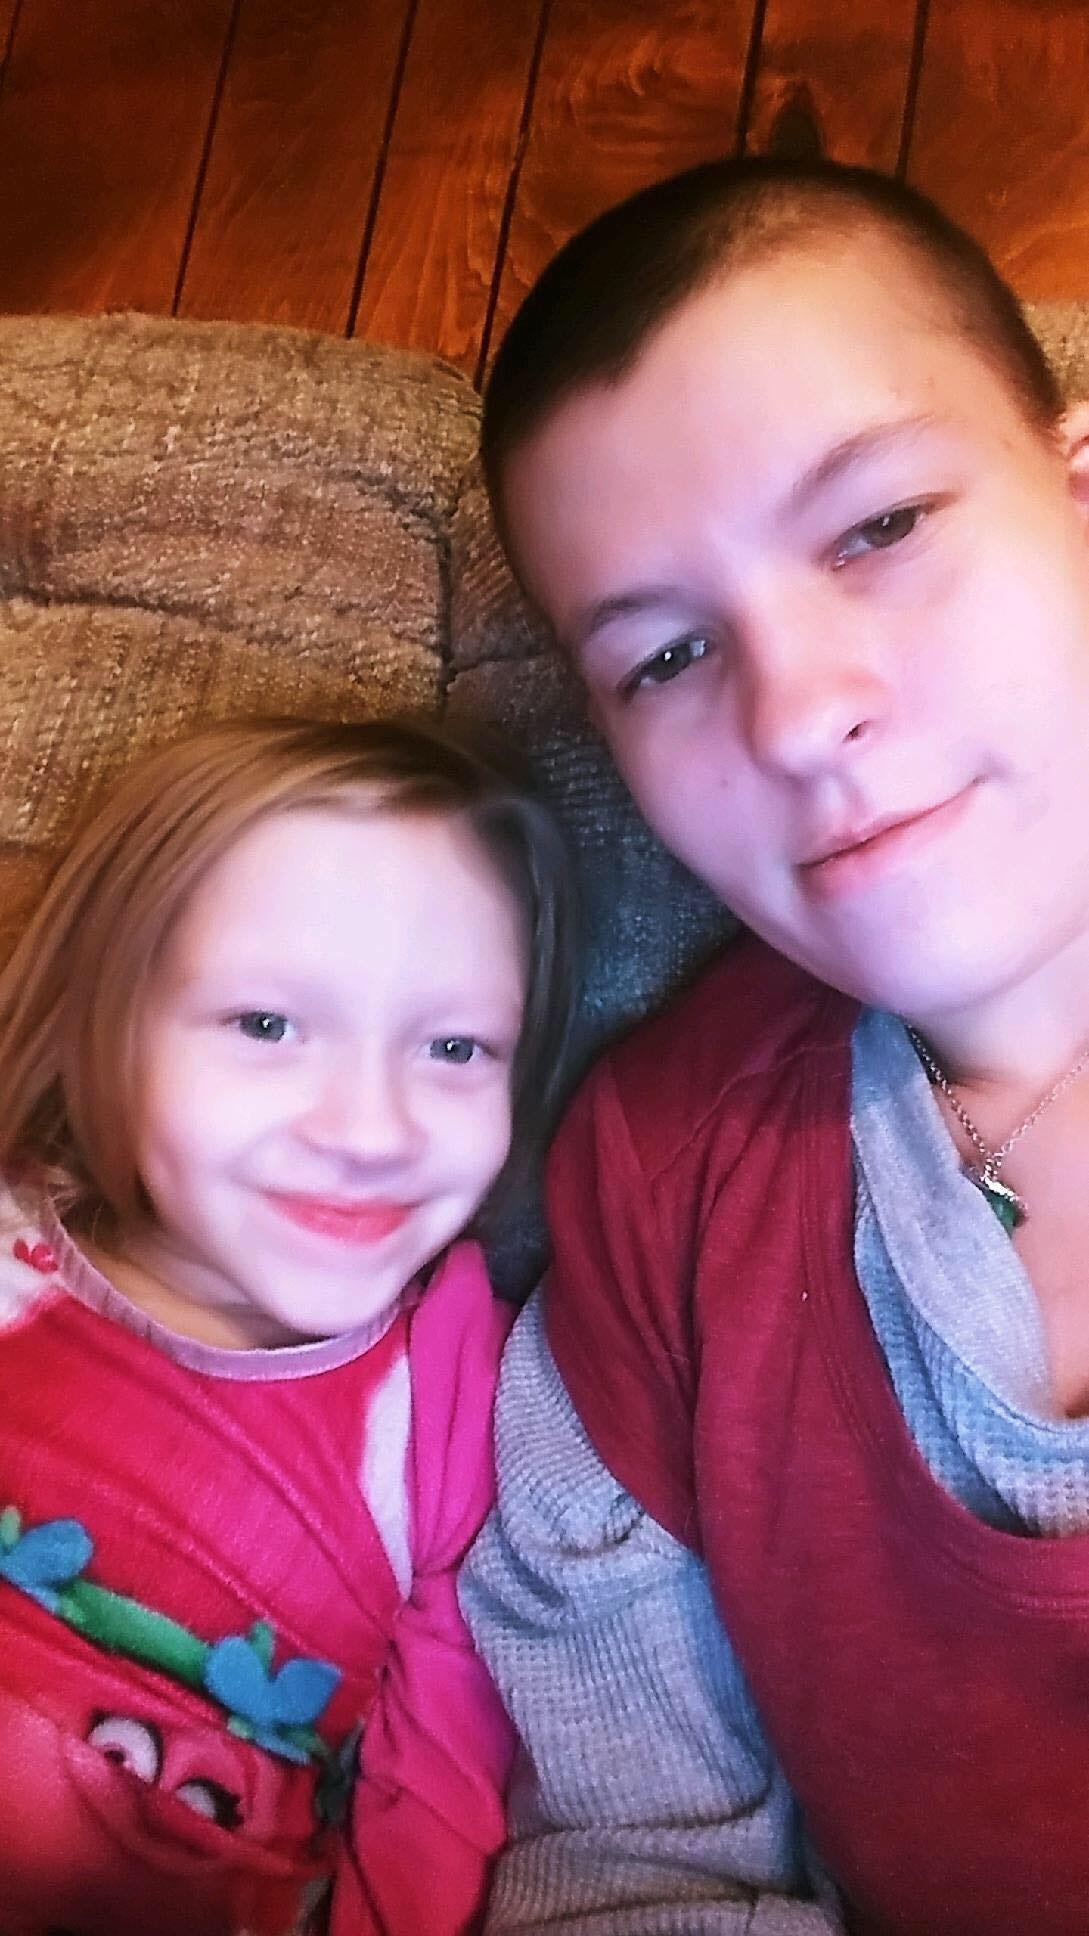 Mother of girl killed getting on school bus near Plainfield files wrongful death lawsuit